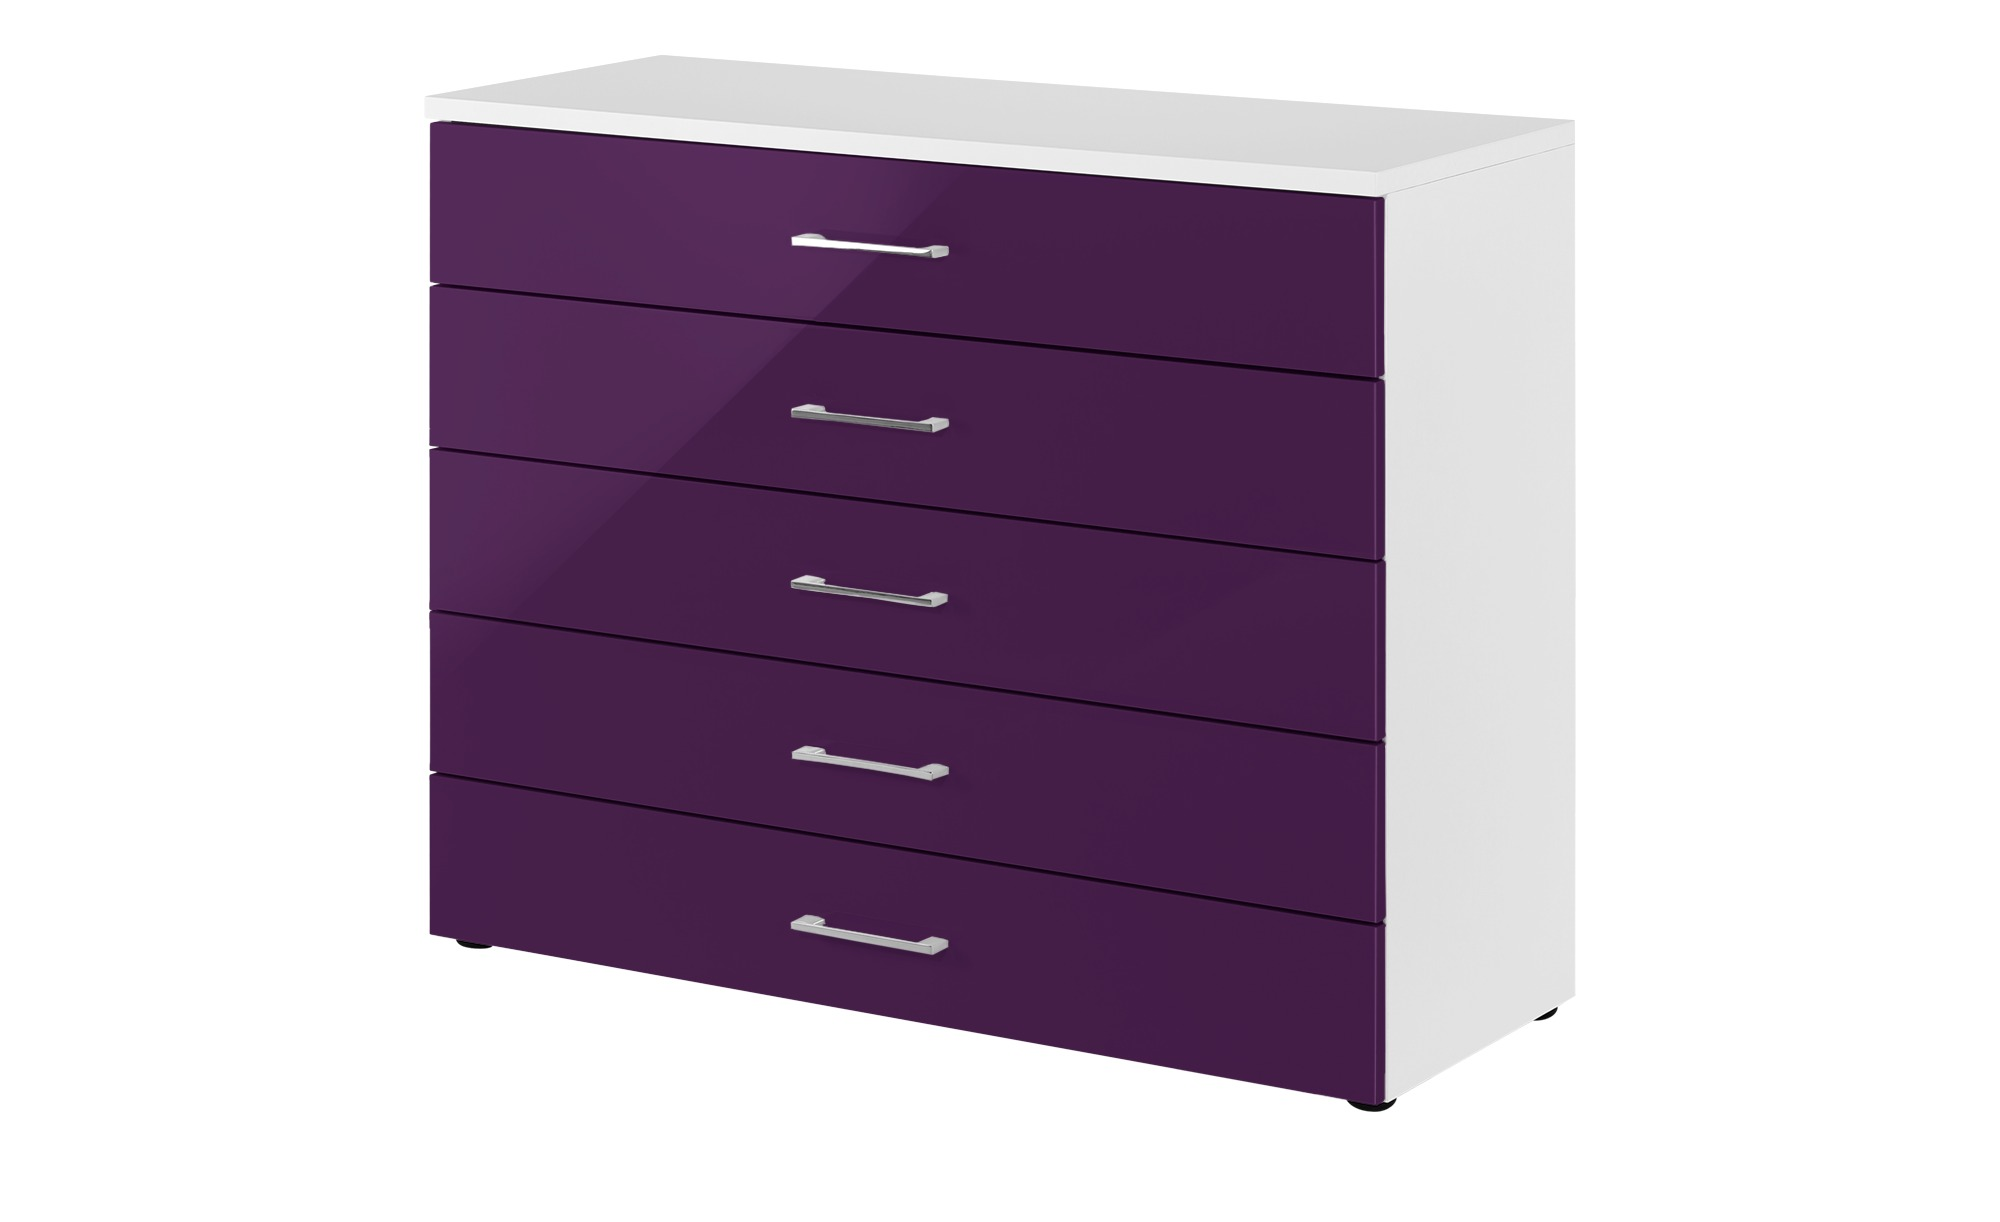 kommode colors breite 100 cm h he 84 cm lila violett online kaufen bei woonio. Black Bedroom Furniture Sets. Home Design Ideas